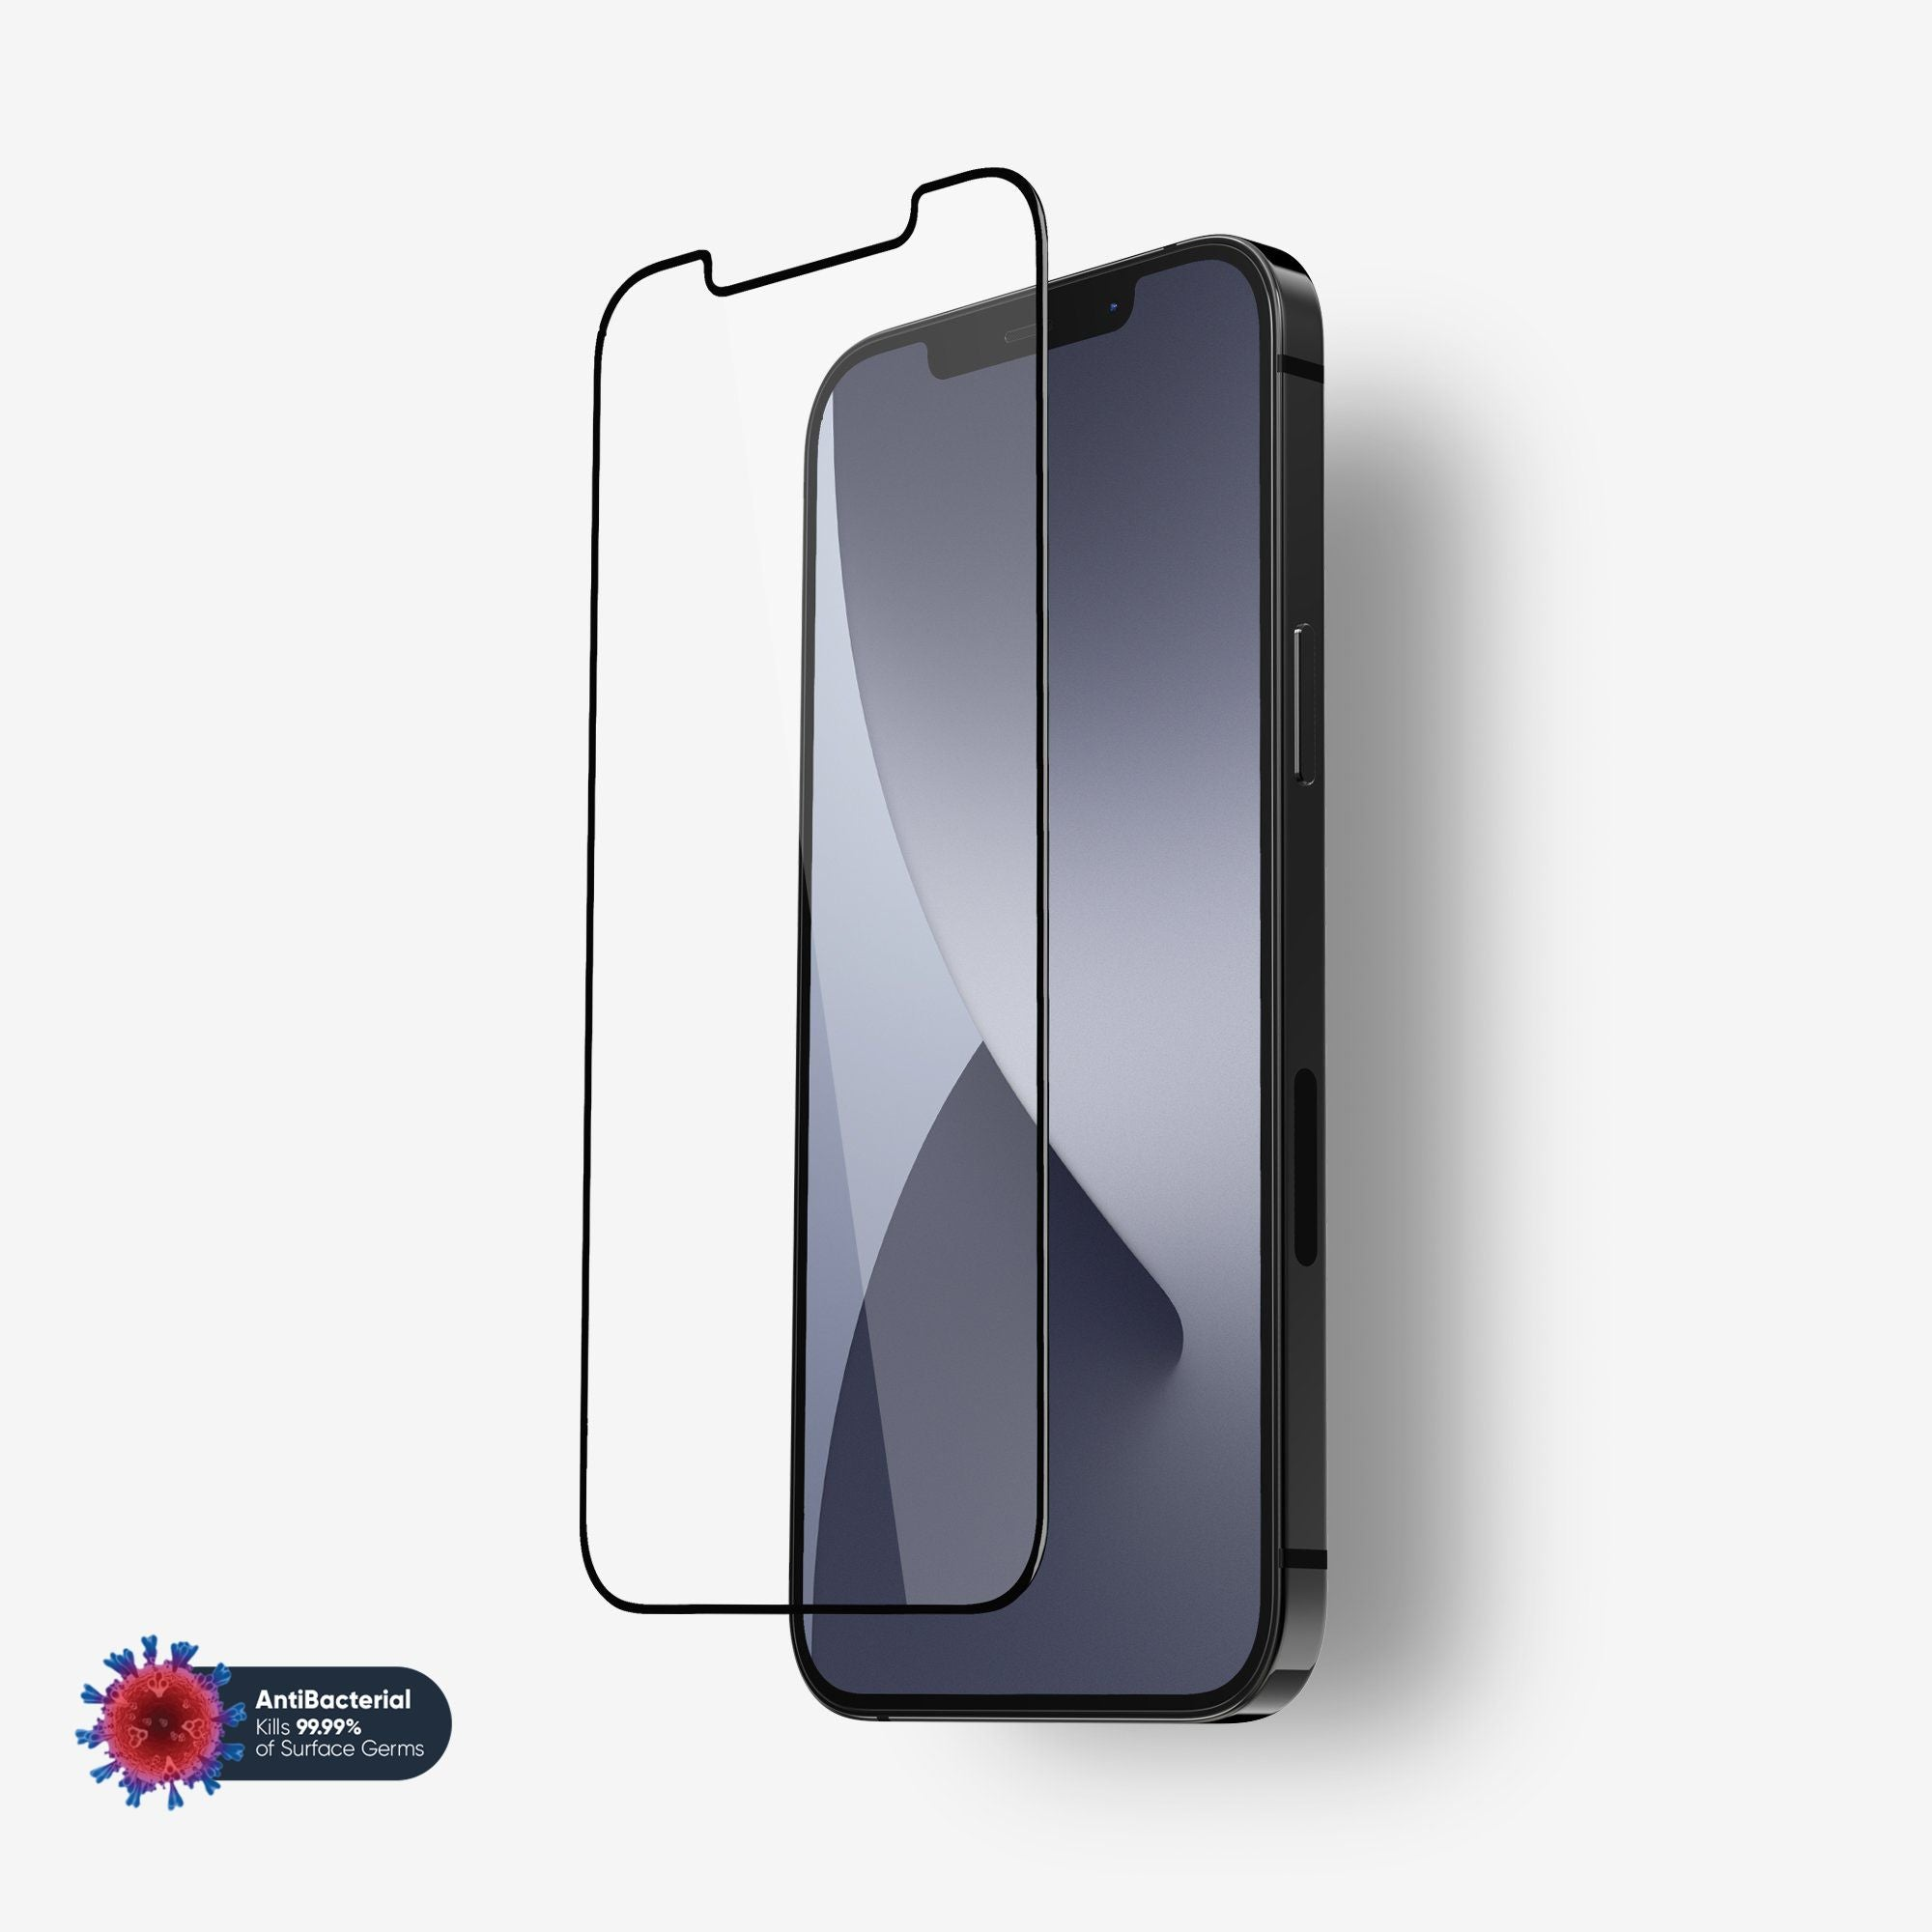 NanoArmour Anti-Microbial Screen Protector iPhone 12 Pro